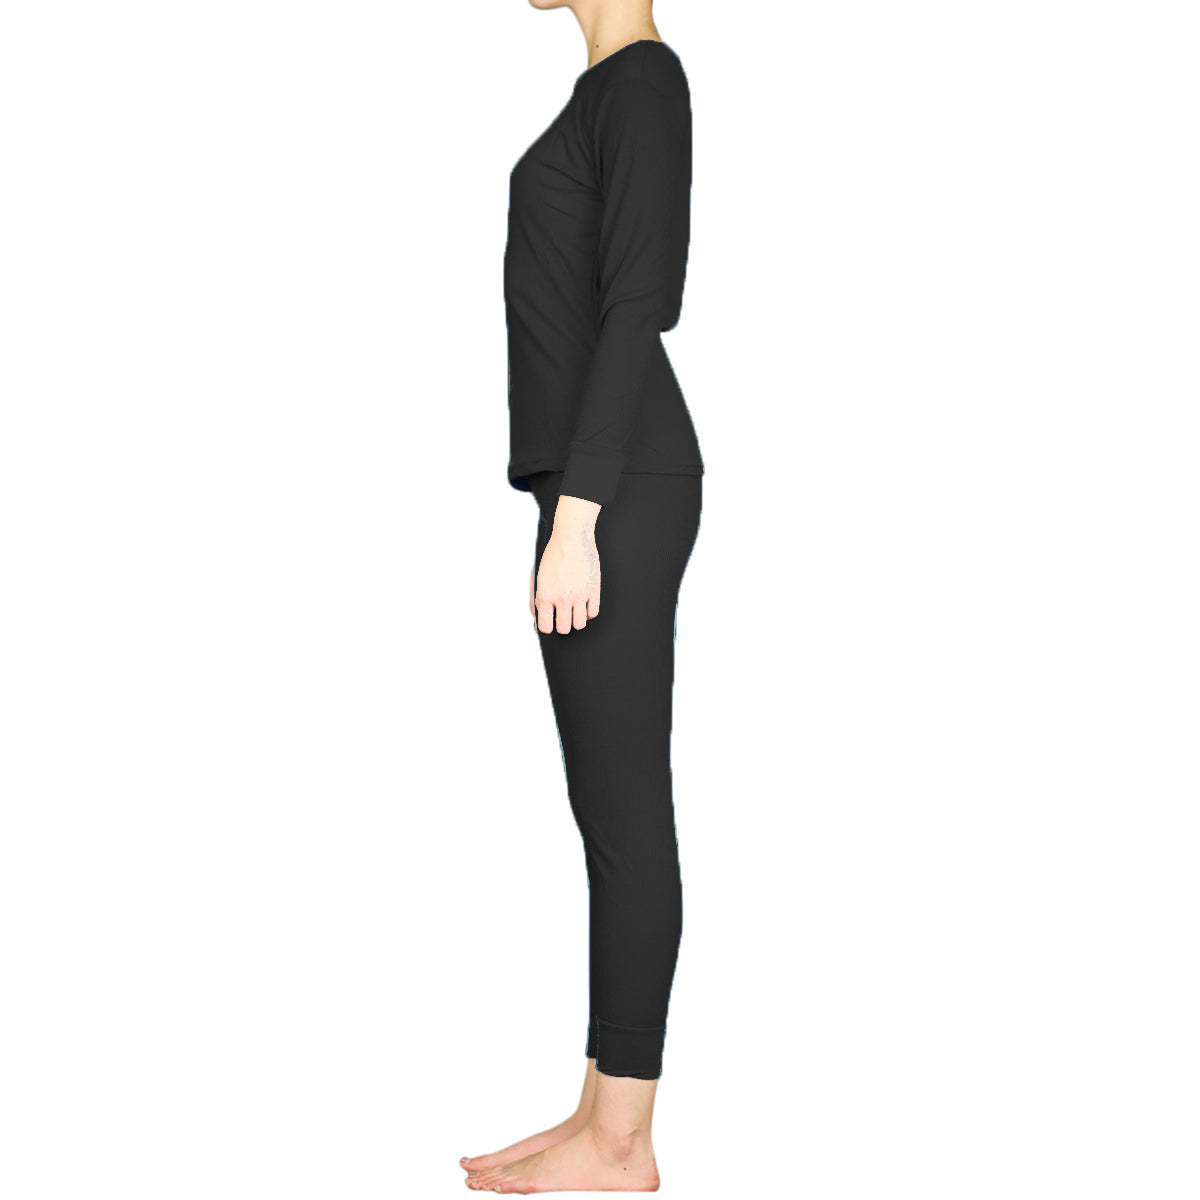 LAVRA Women's 100% Cotton Thermal Sets Underwear Two Piece Long Johns Loungewear